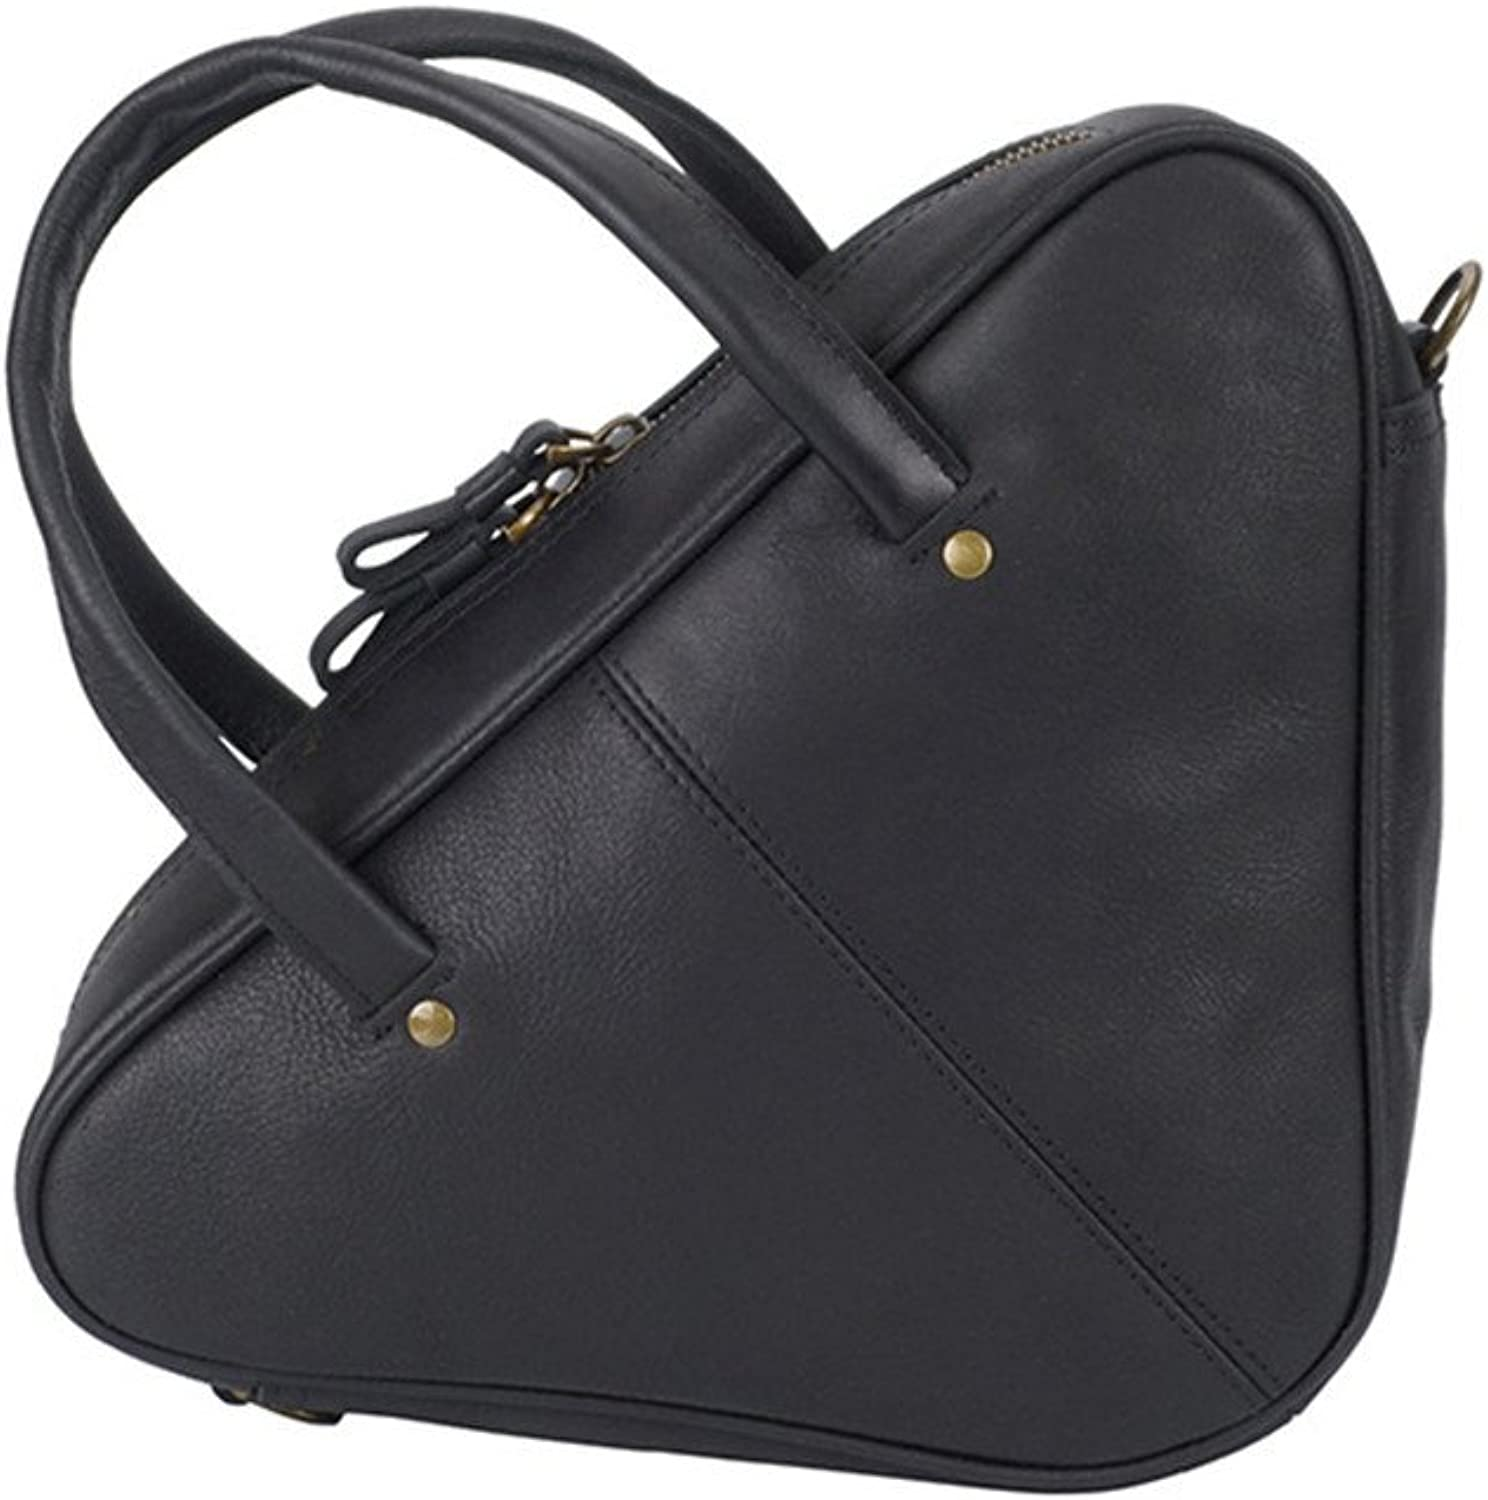 Sturdy New Vintage Handbag Leather Cowhide Messenger Handbag Leather Handbag Light Leather Comfort Handle Easy to Carry Large Capacity (color   Black)